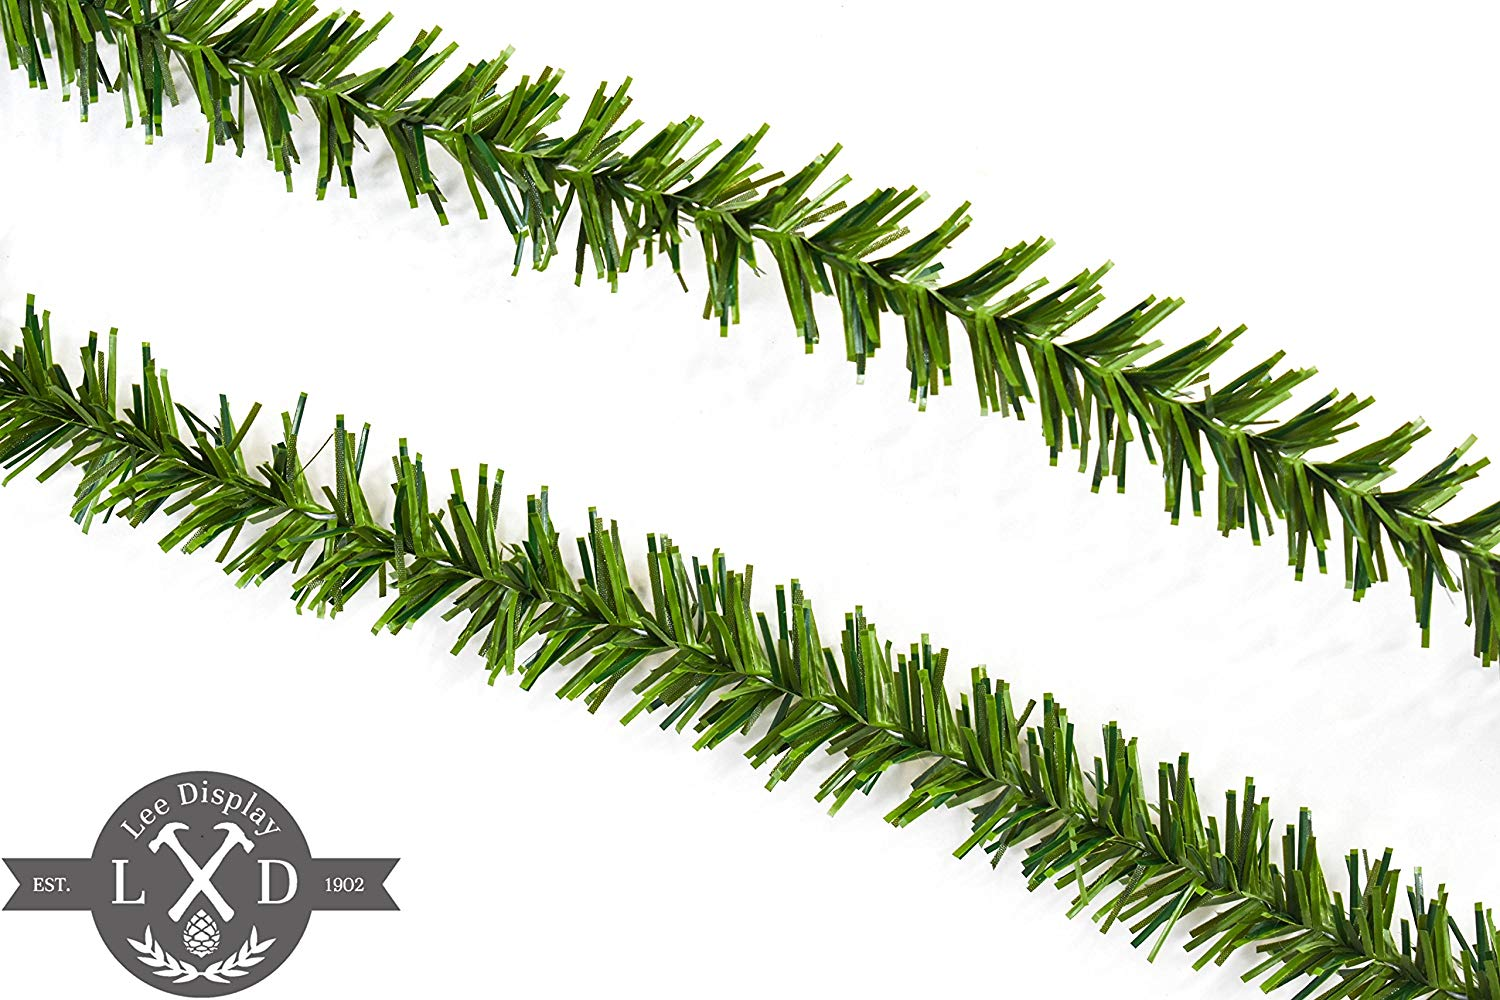 25ft alpine green tinsel garland alpine green tinsel garland 3in width tinsel garlands for christmas decorations